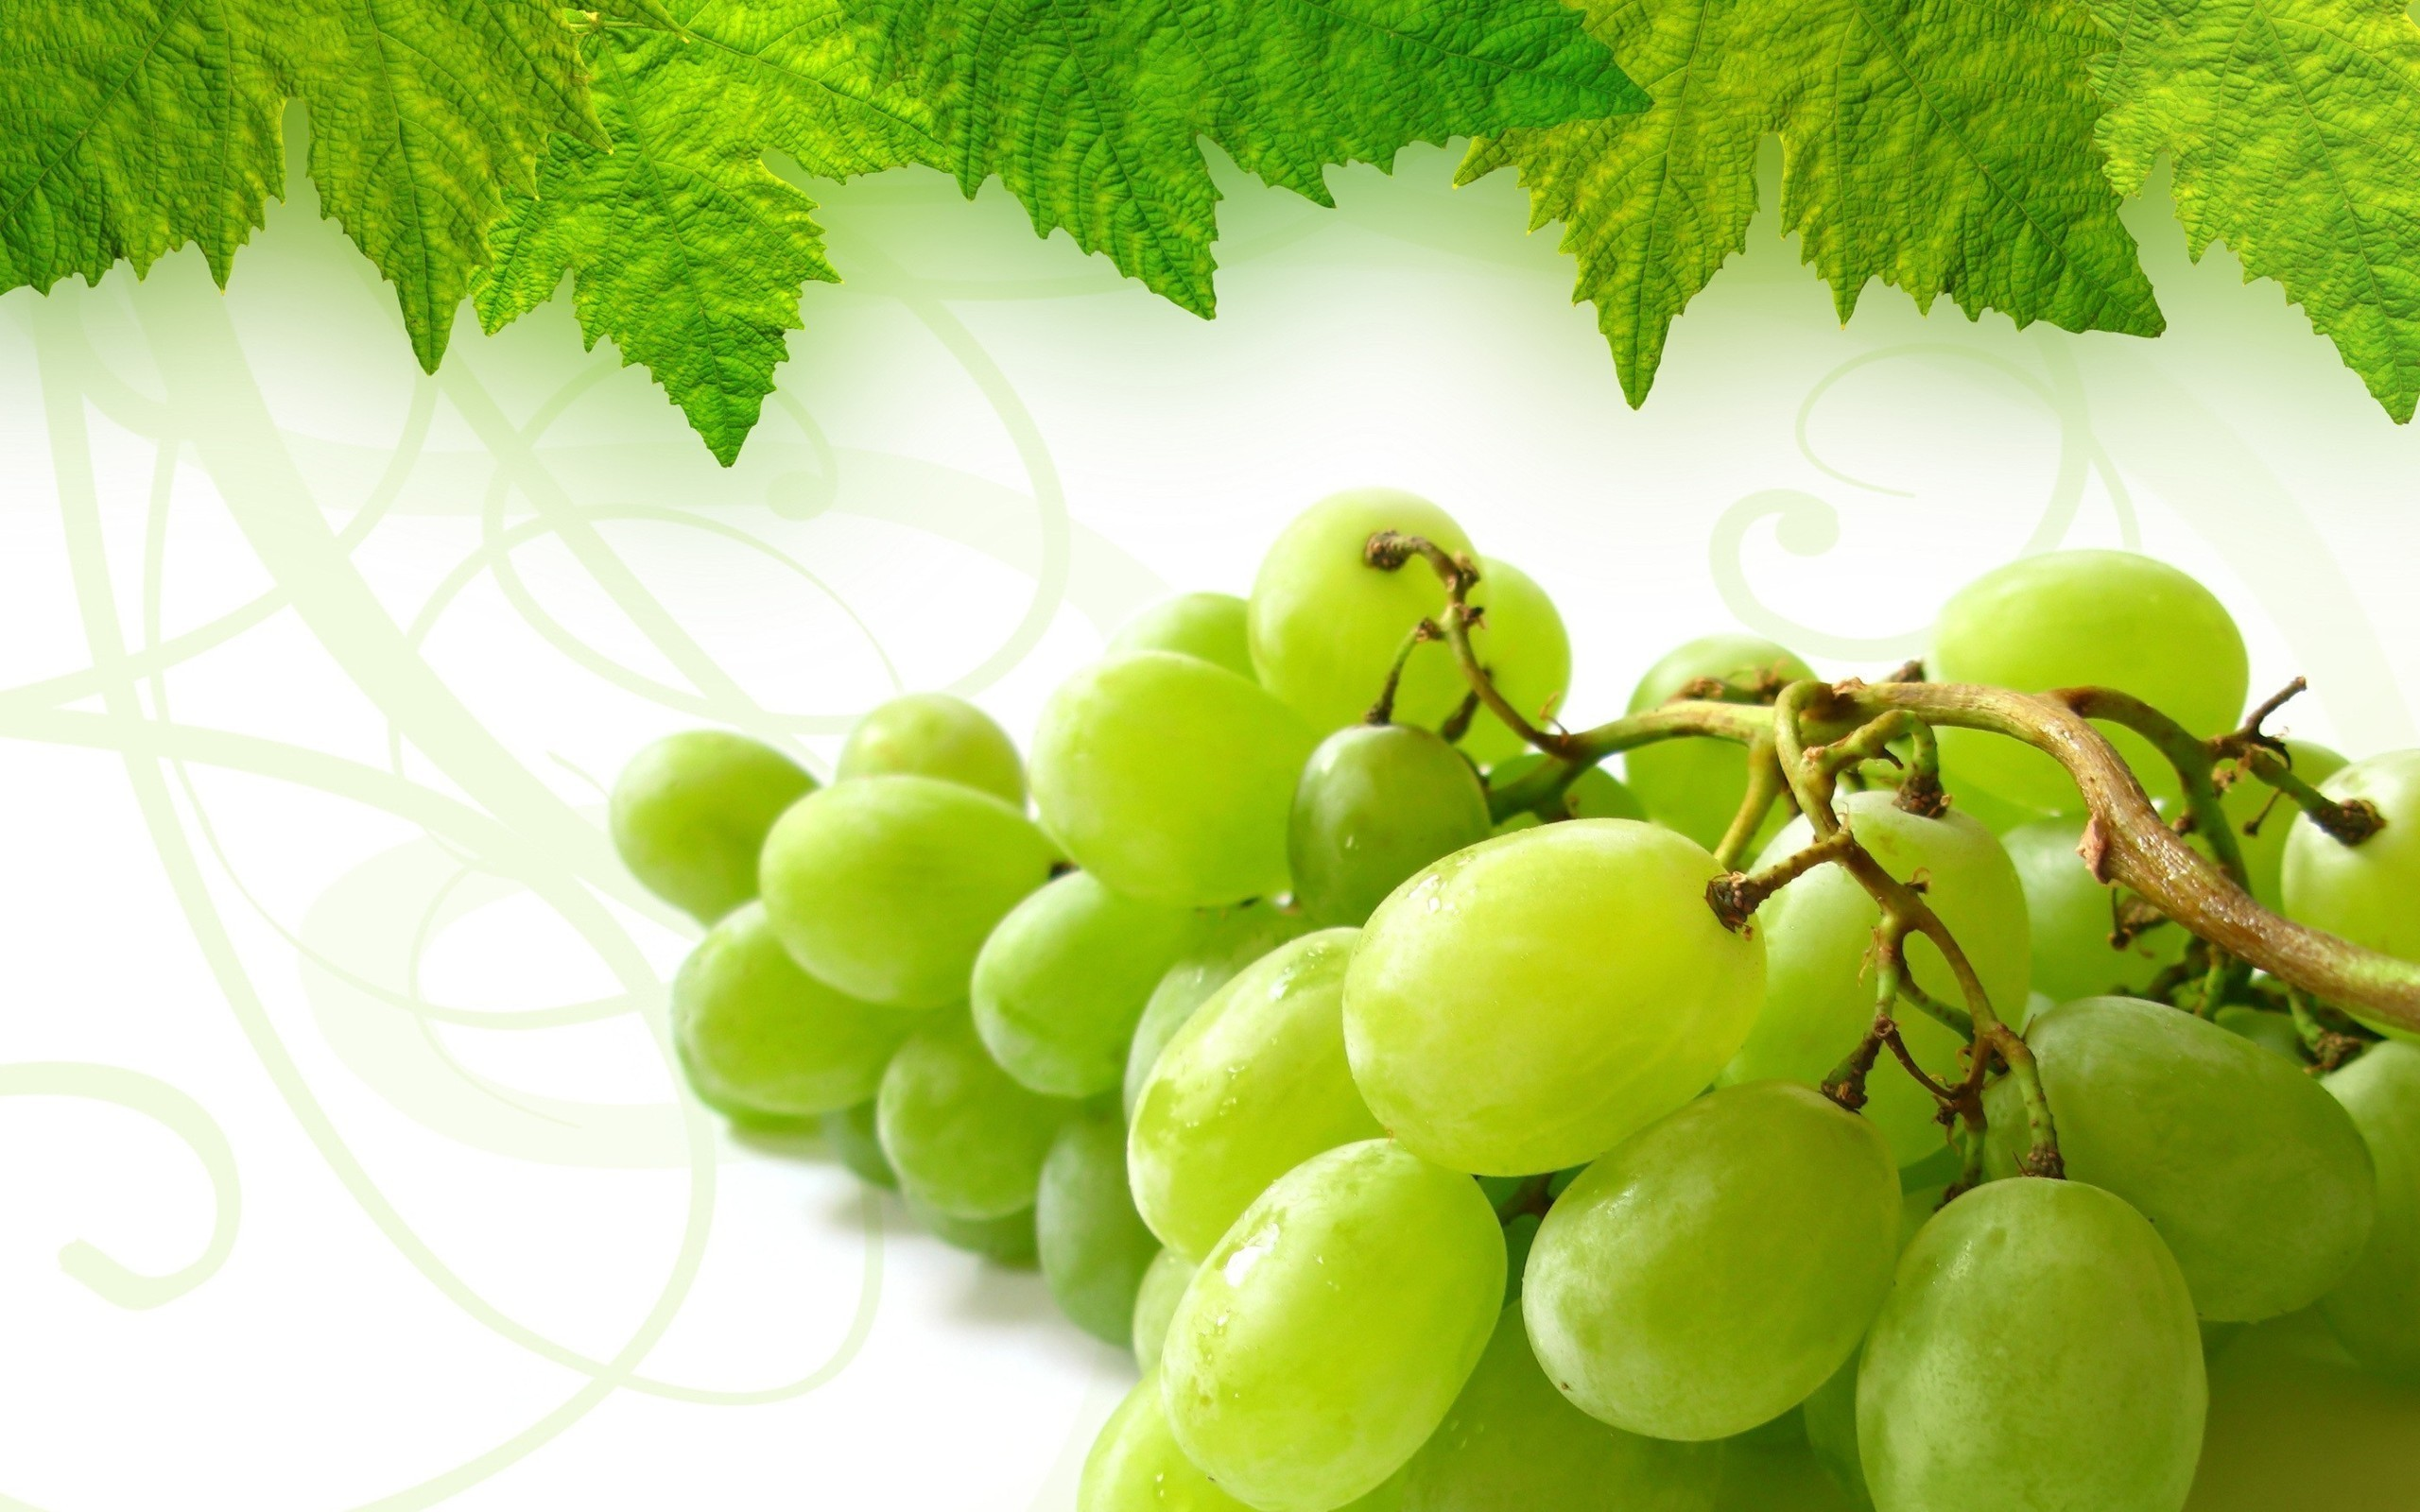 Free download grapes hd wallpaper for laptop